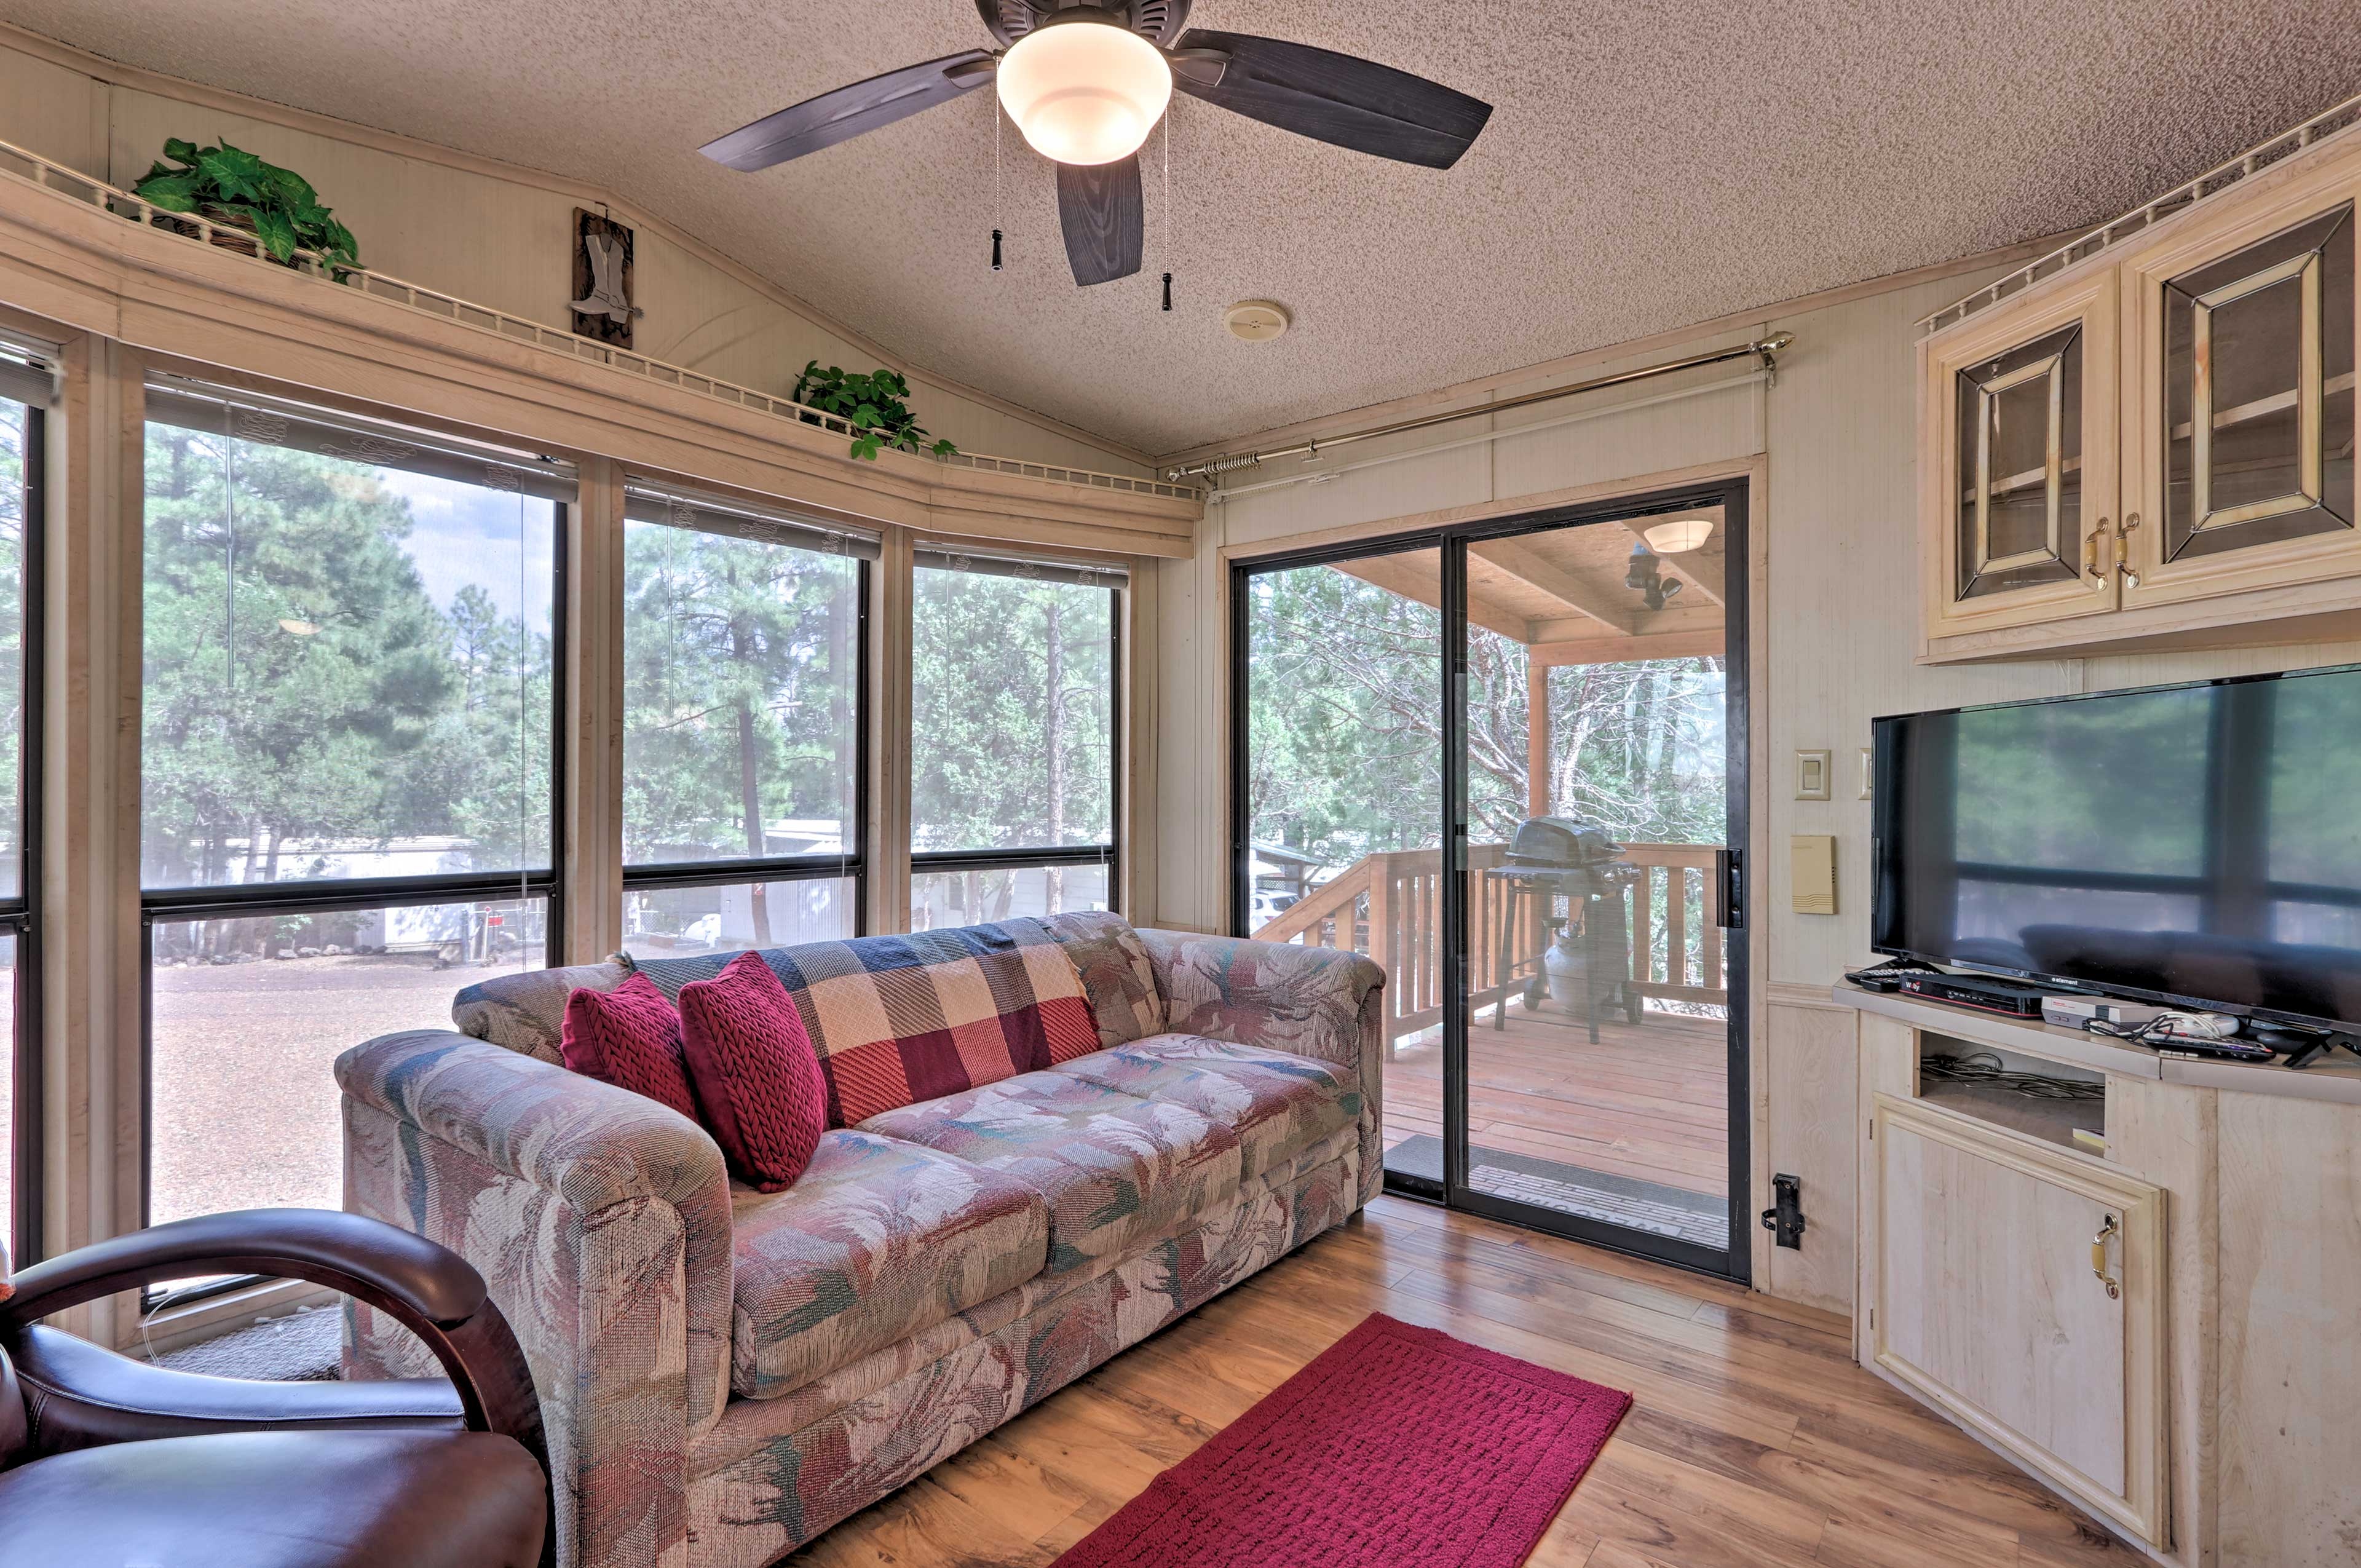 Inside, you'll find 2 bedrooms, 1 bathroom, and all of the comforts of home.